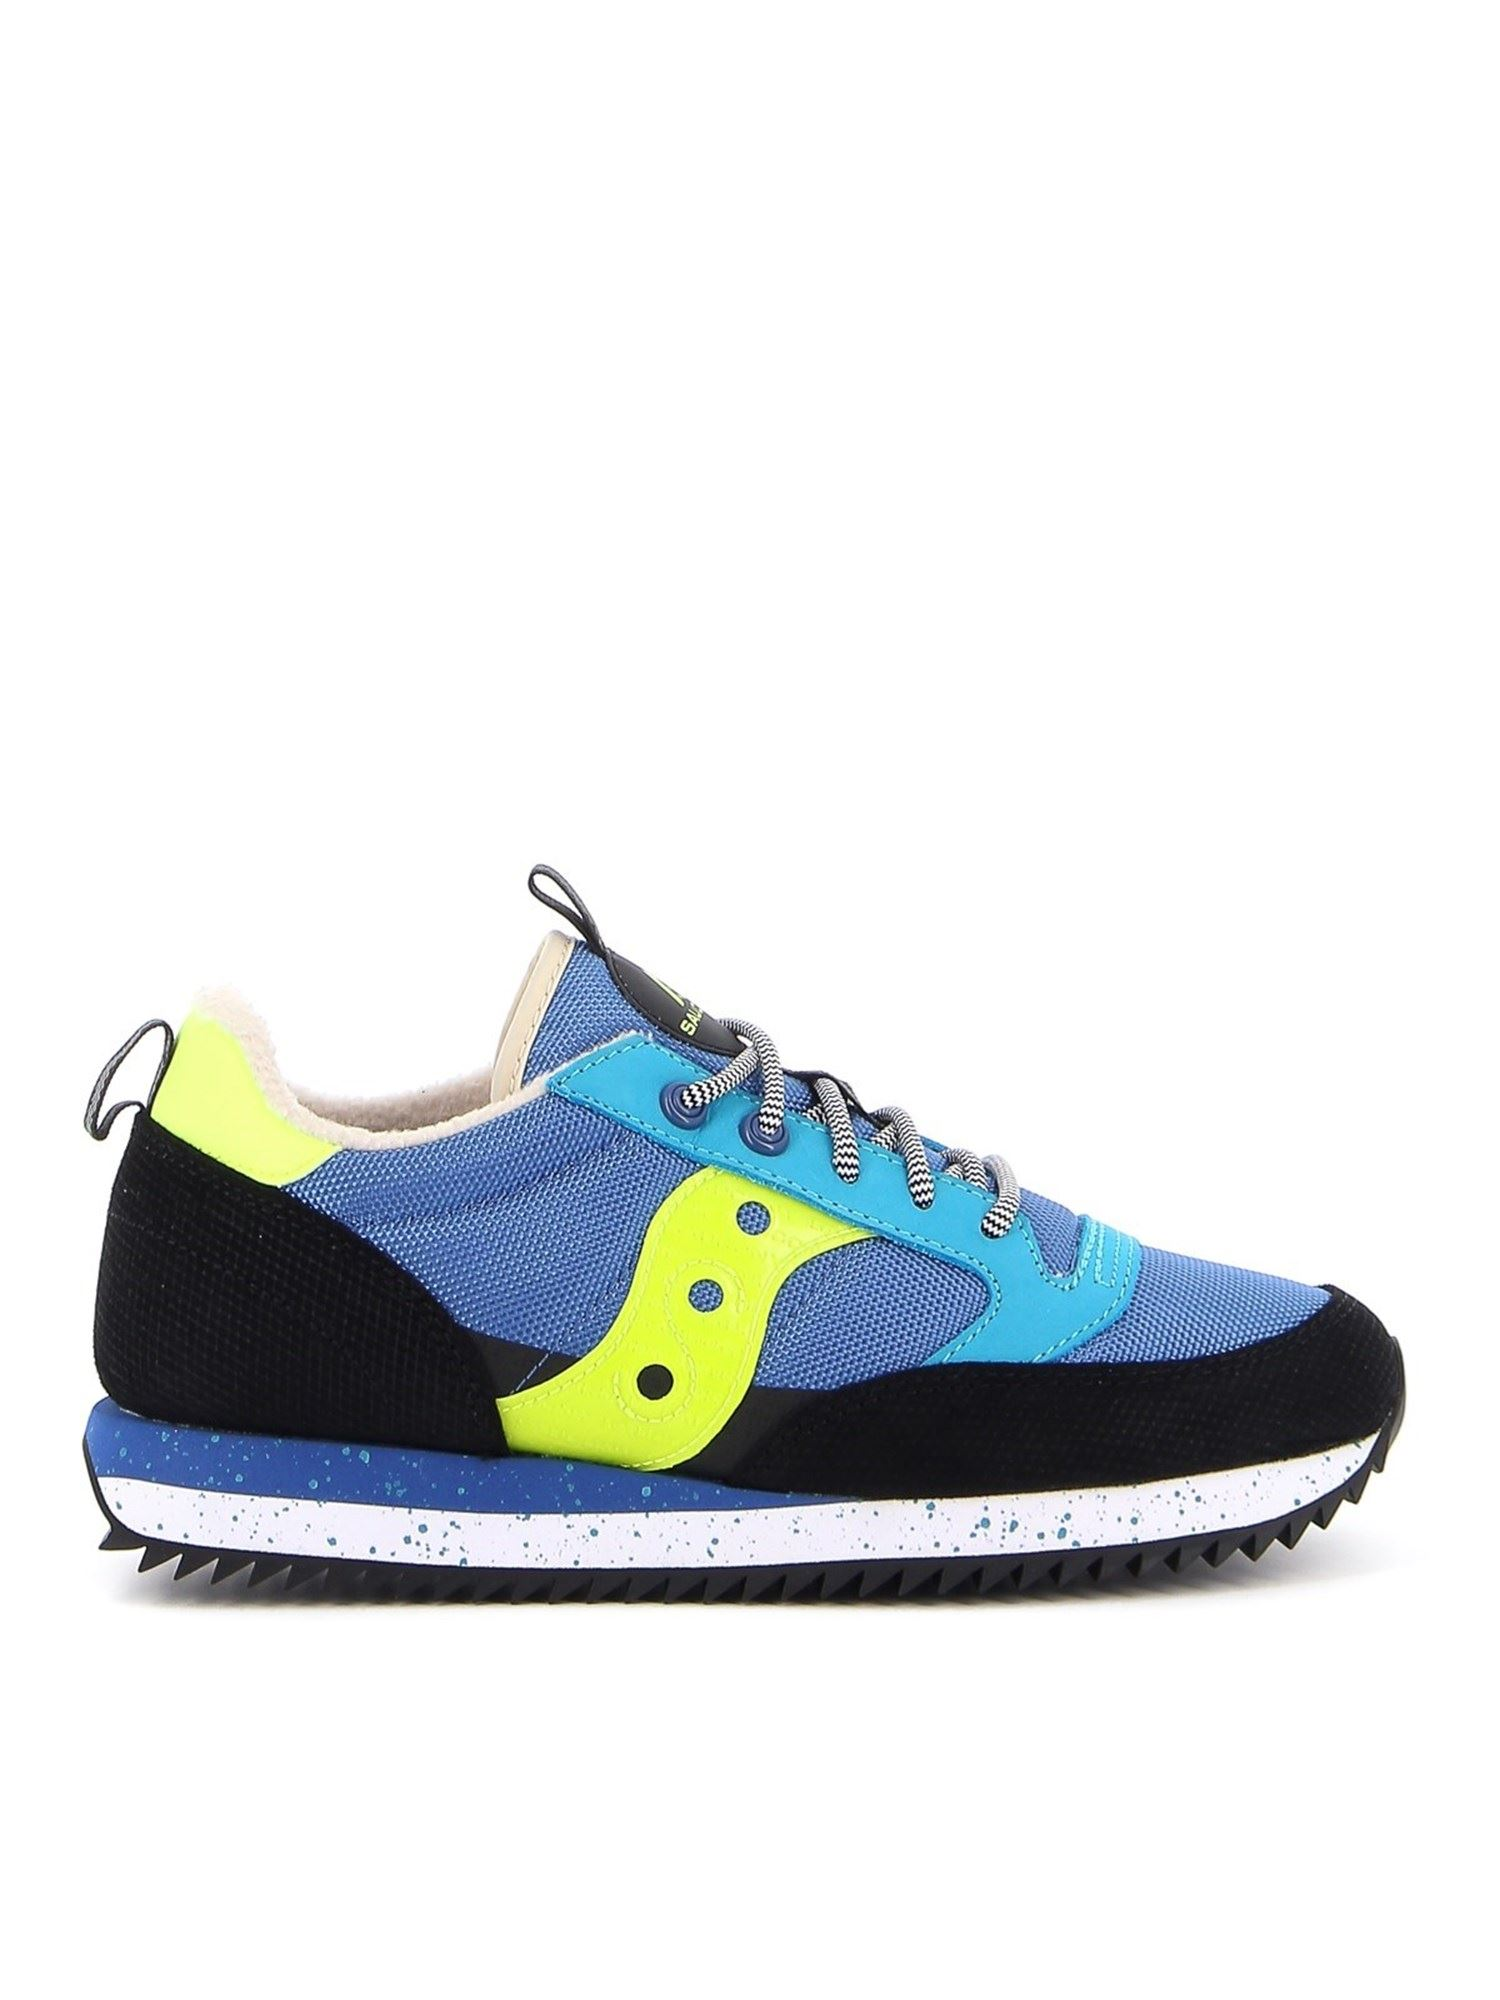 SAUCONY JAZZ ORIGINAL MESH AND LEATHER SNEAKERS IN BLUE